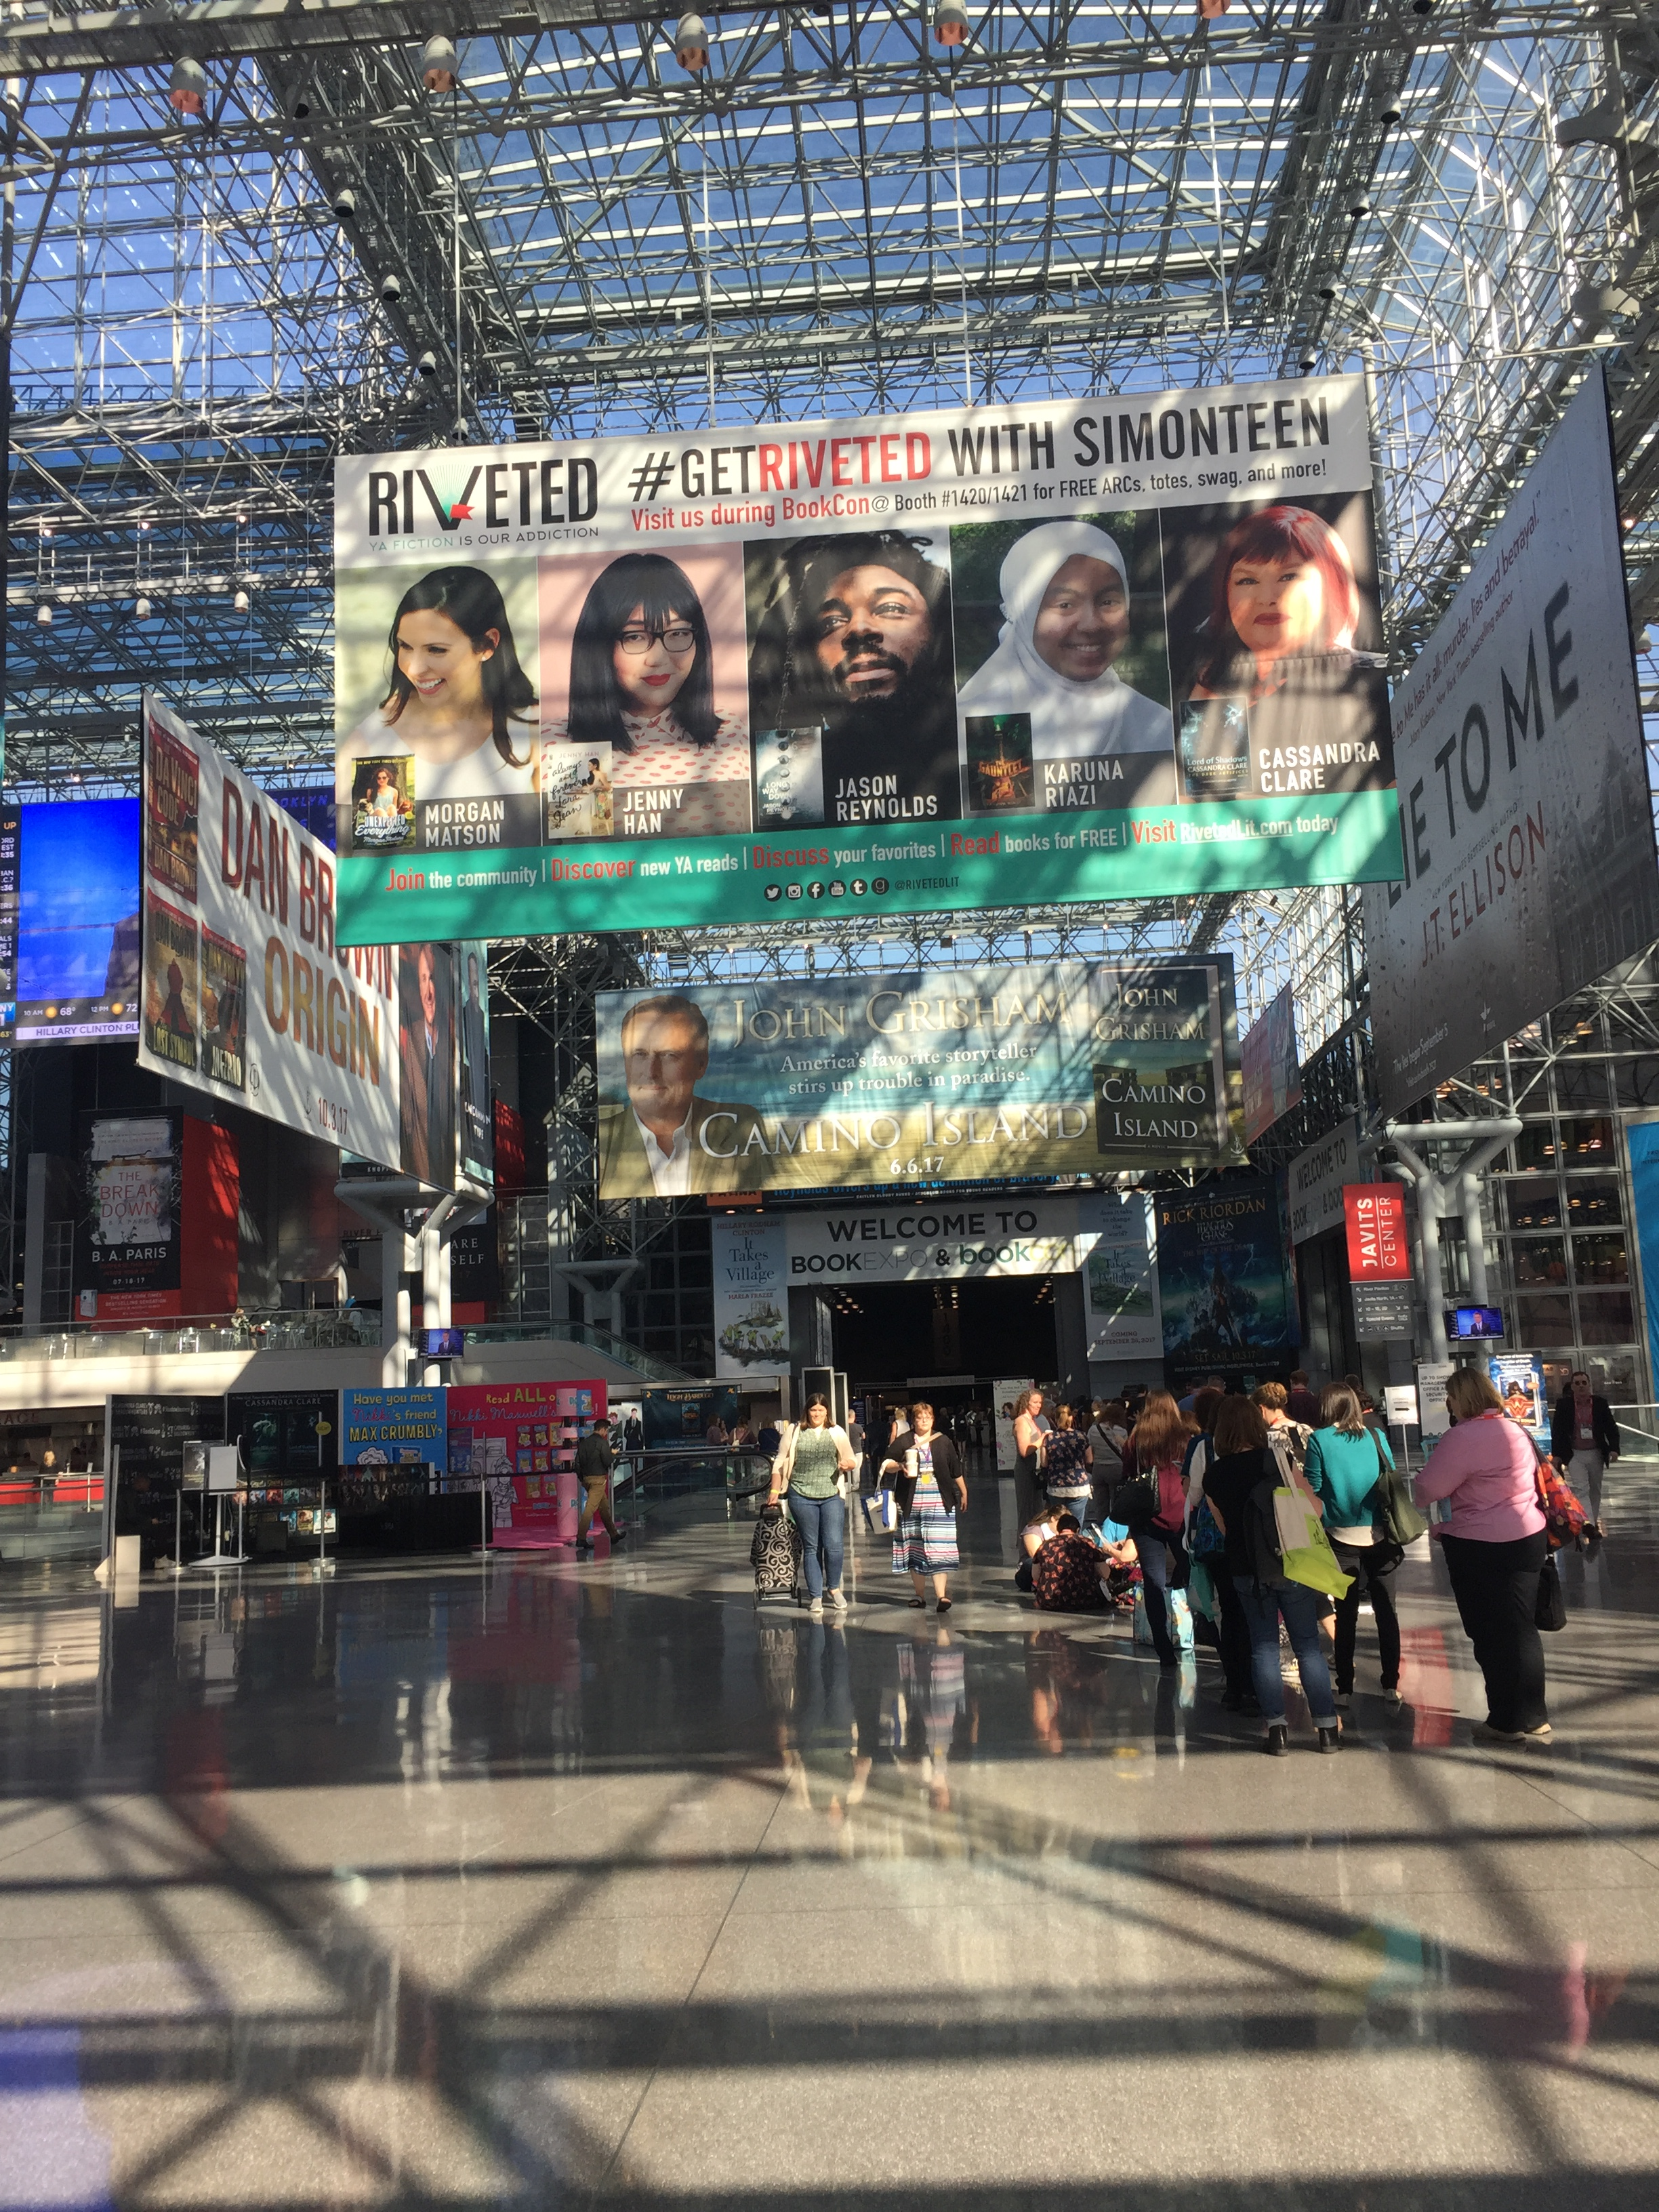 Walking Through The Glass Doors Of The Javitz Center, I Noticed The Huge  Signs Of Publishers And Booksellers Such As Simon & Schuster, Ingram,